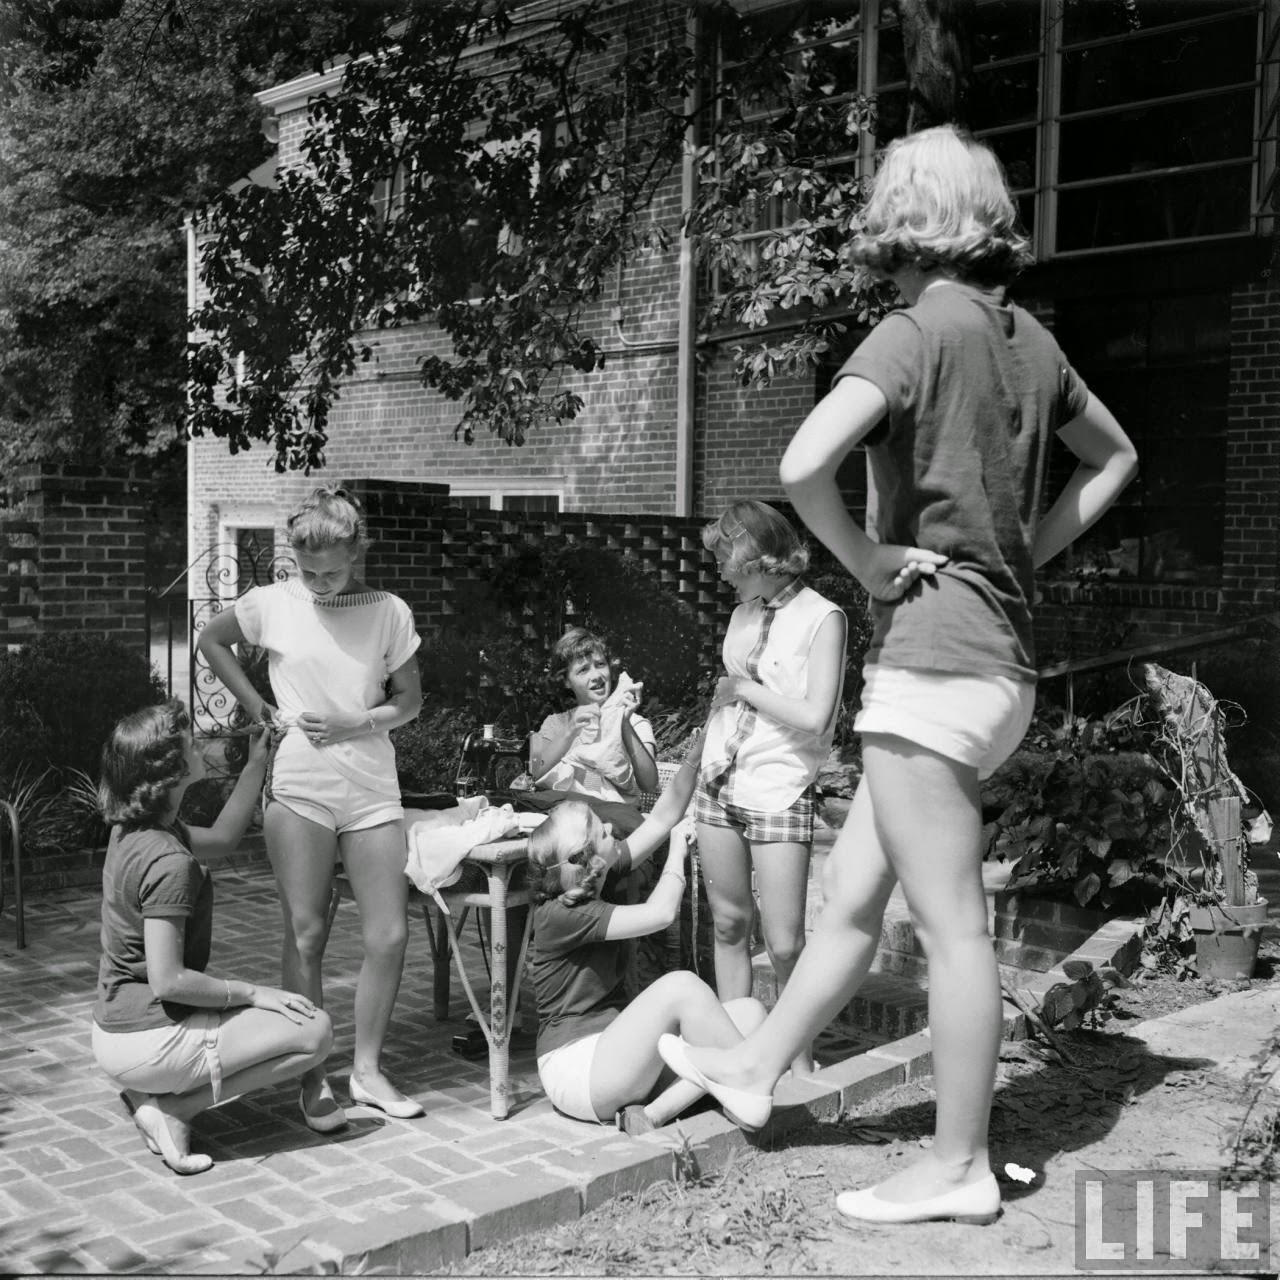 Short Shorts in the 1950's (17)